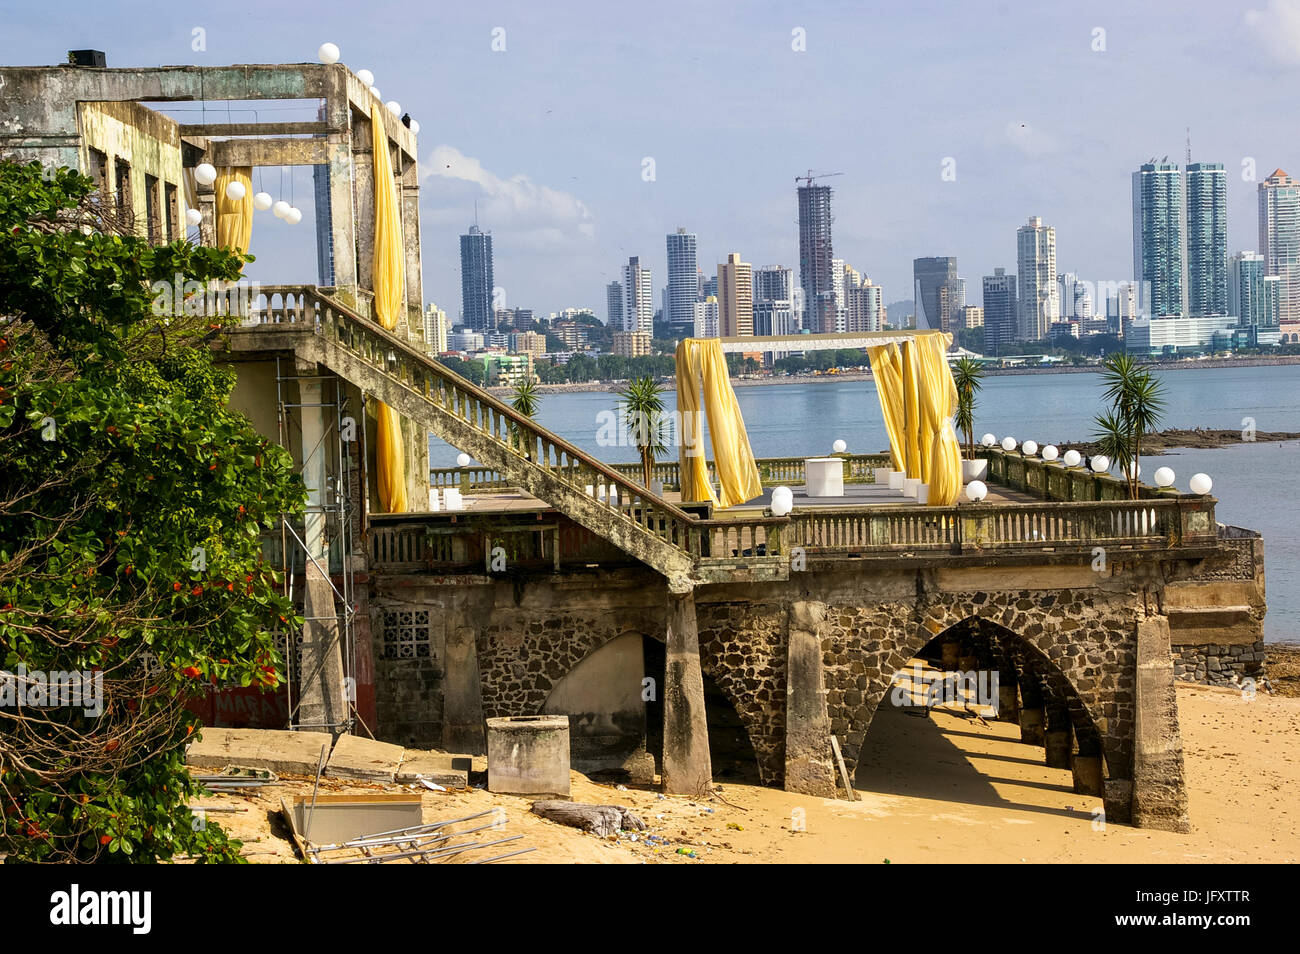 James Bond Film scene of Quantum of Solace in Panama - Stock Image